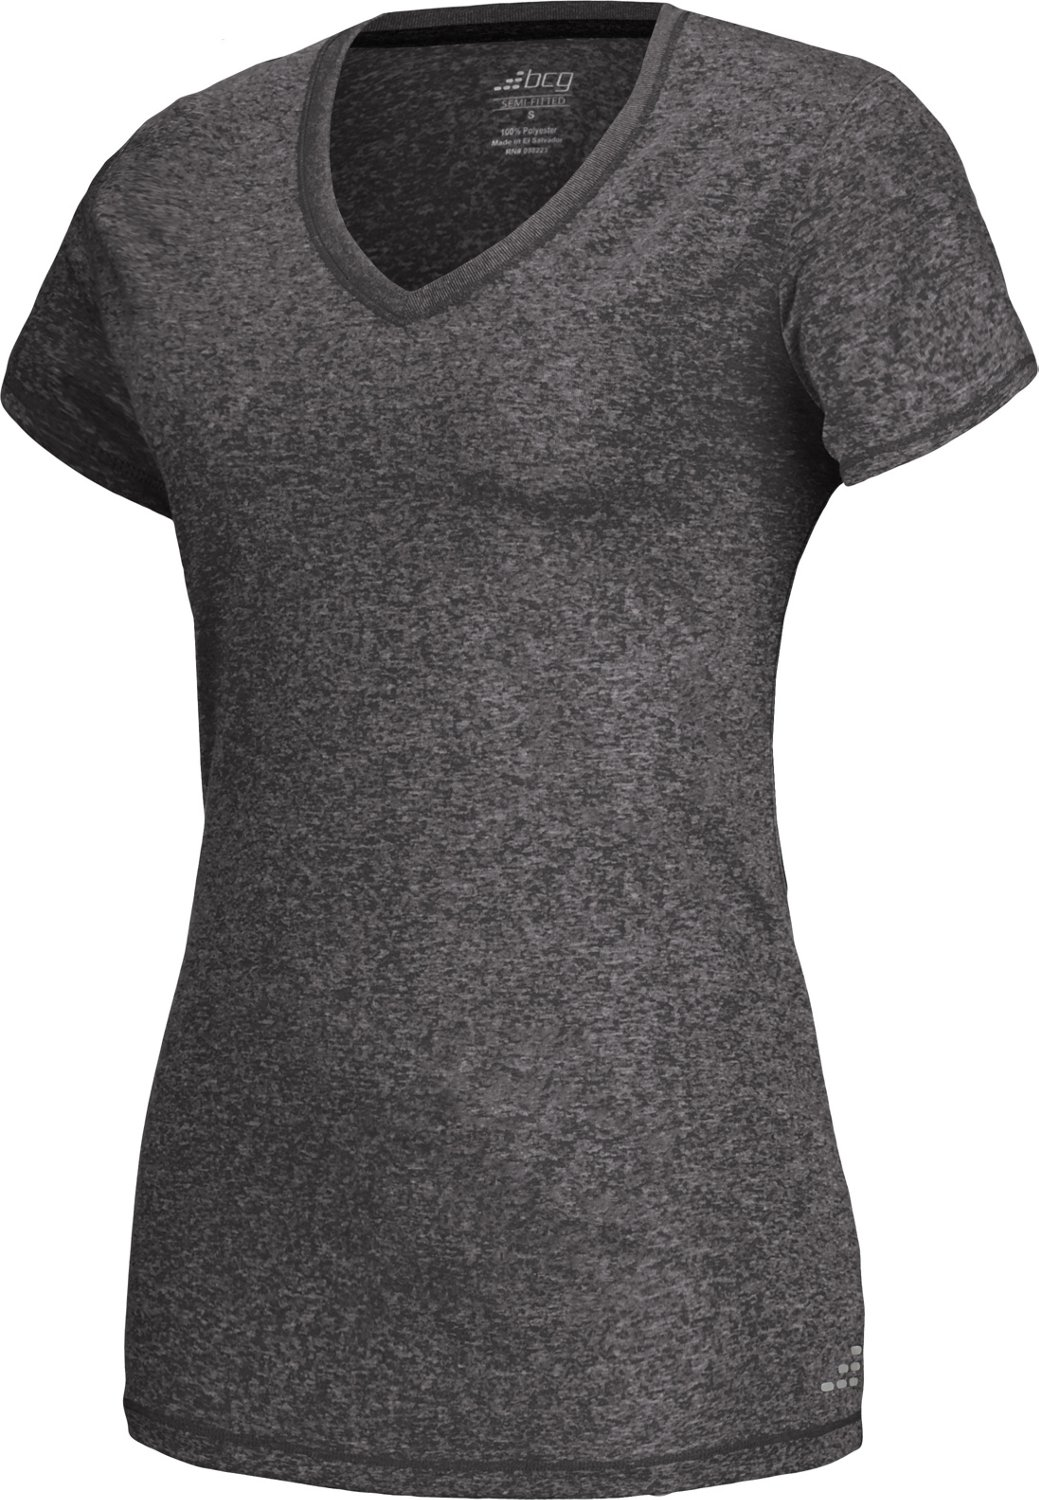 c29002af2641 Display product reviews for BCG Women's Heather V-neck Training Tech T-shirt